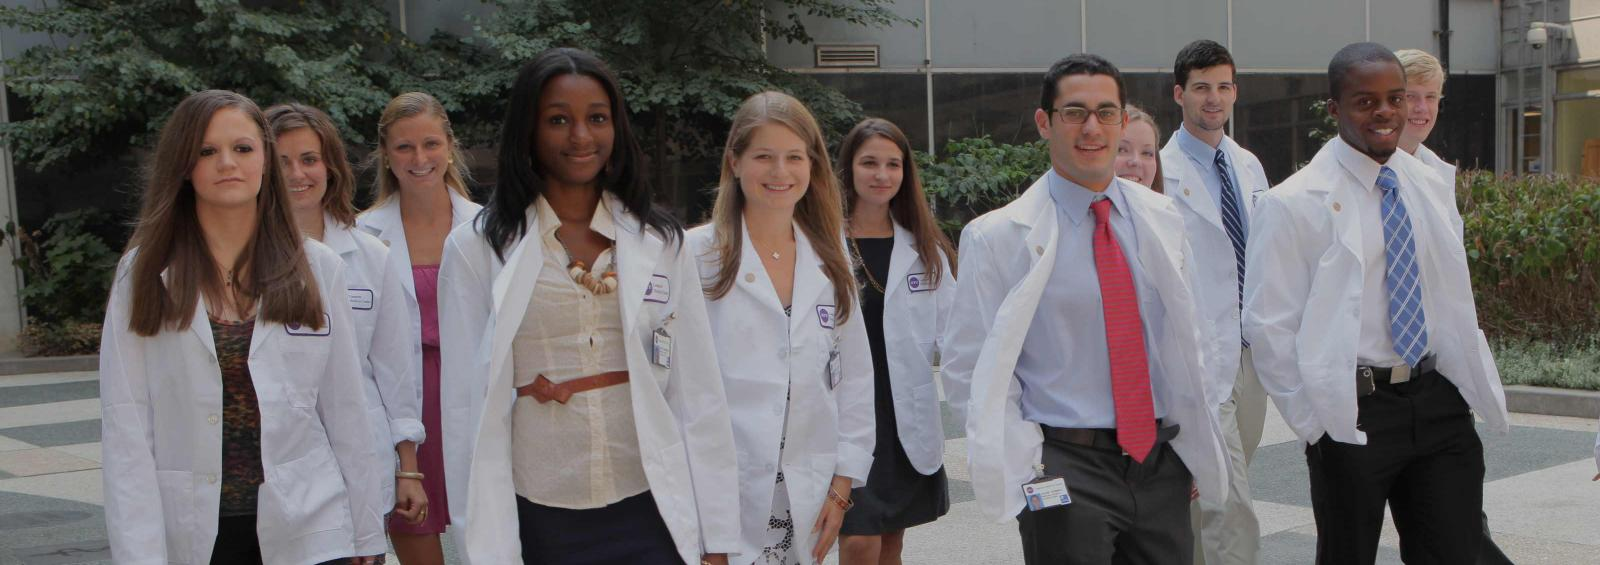 Medical Students in White Coats